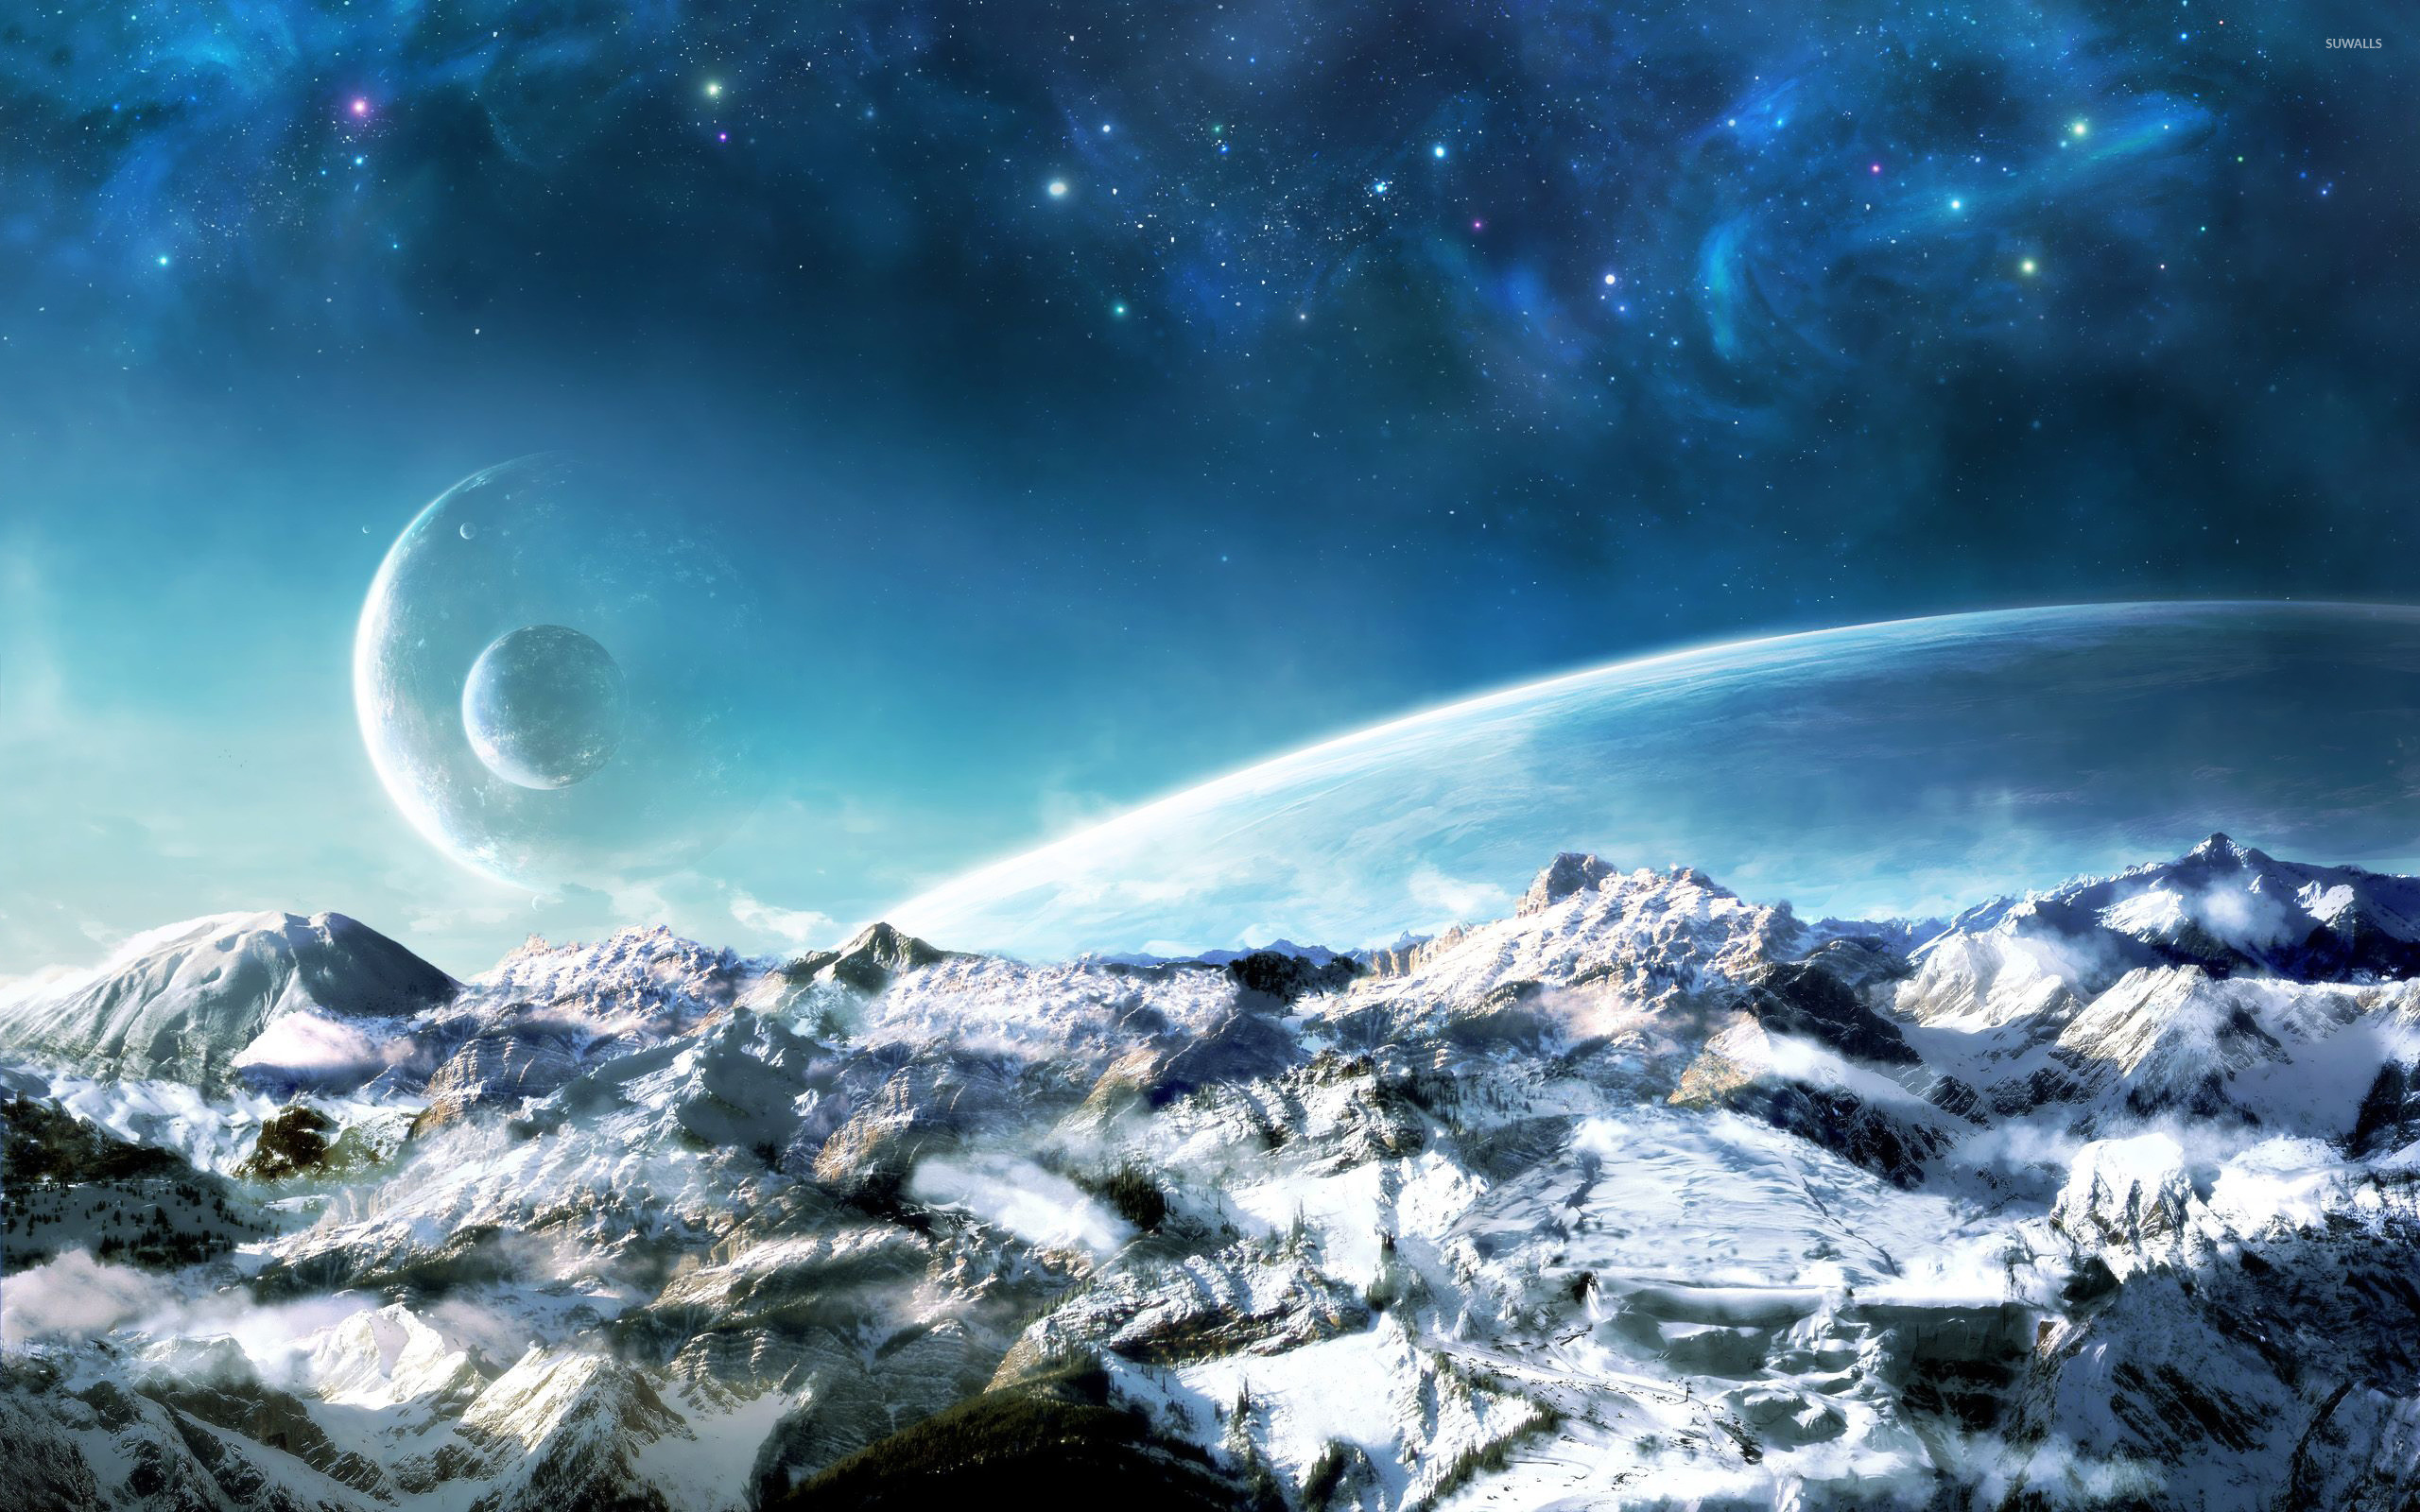 Res: 2560x1600, Planets over the snowy mountains wallpaper